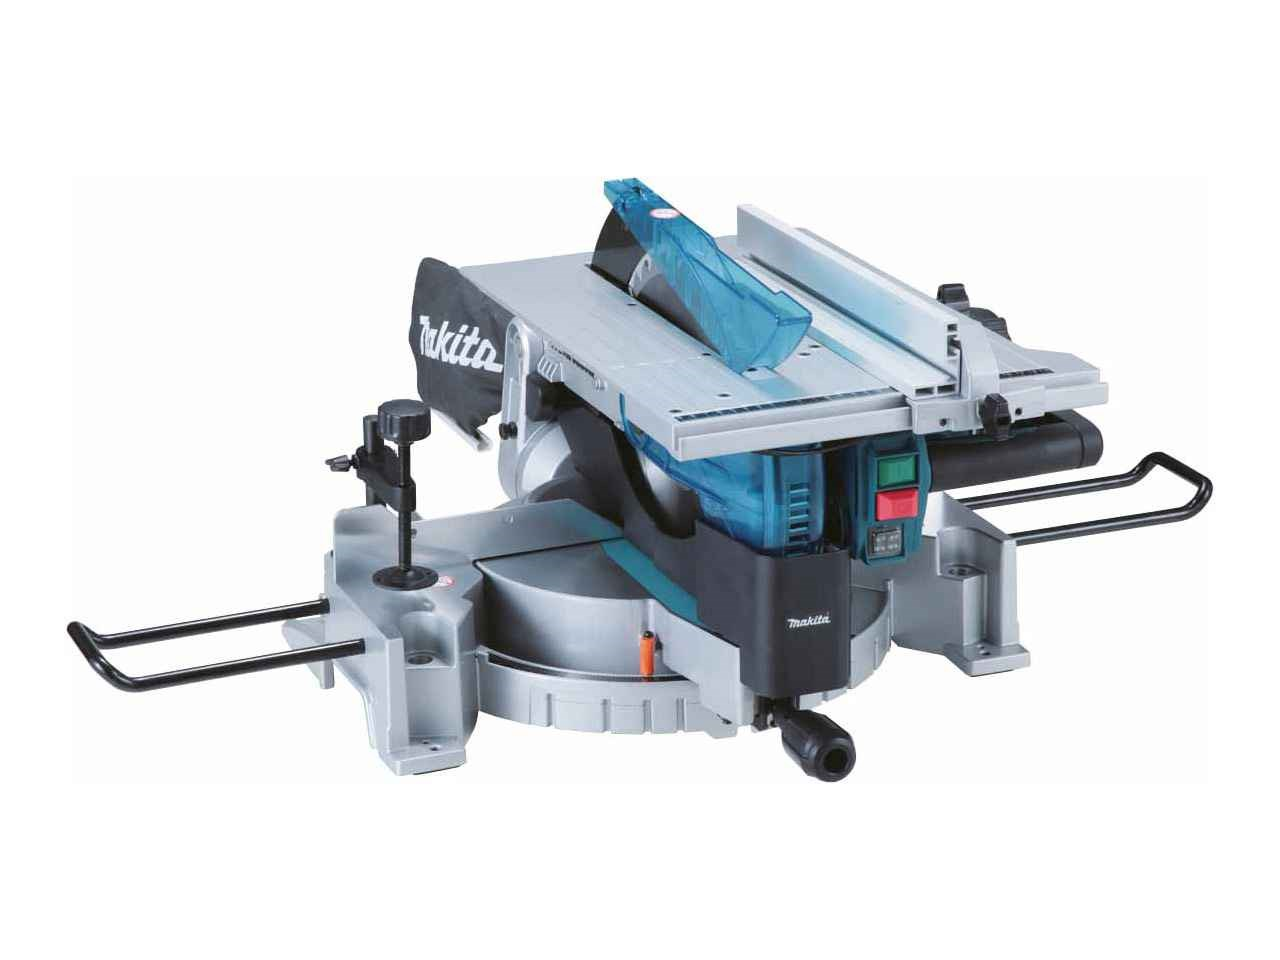 makita lh1201fl 2 230v 305mm table mitre saw. Black Bedroom Furniture Sets. Home Design Ideas